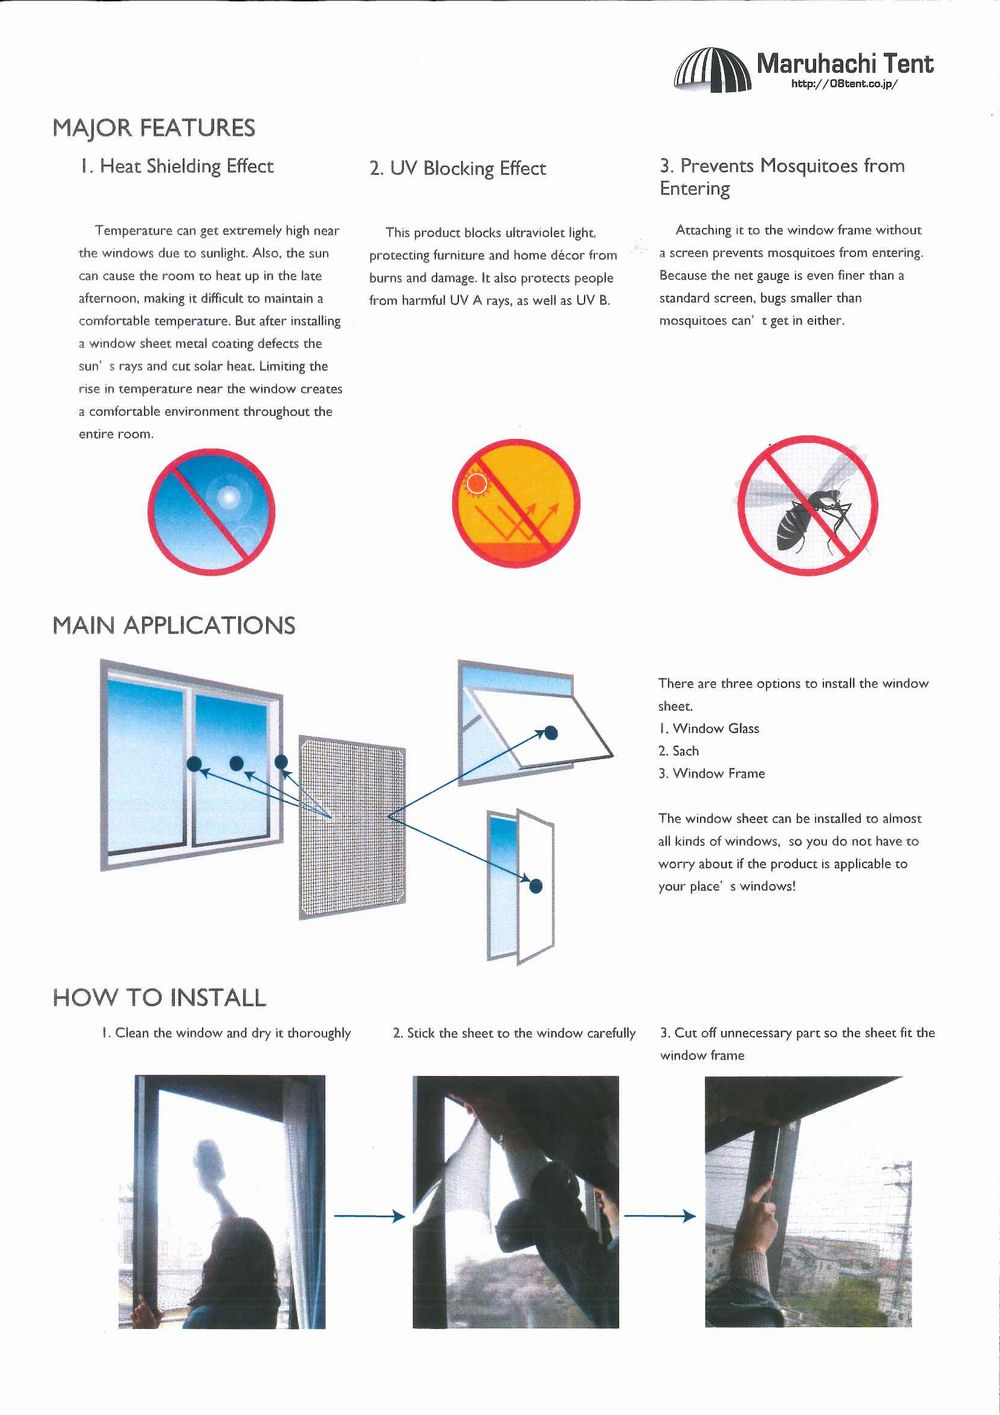 explanation on window sheet